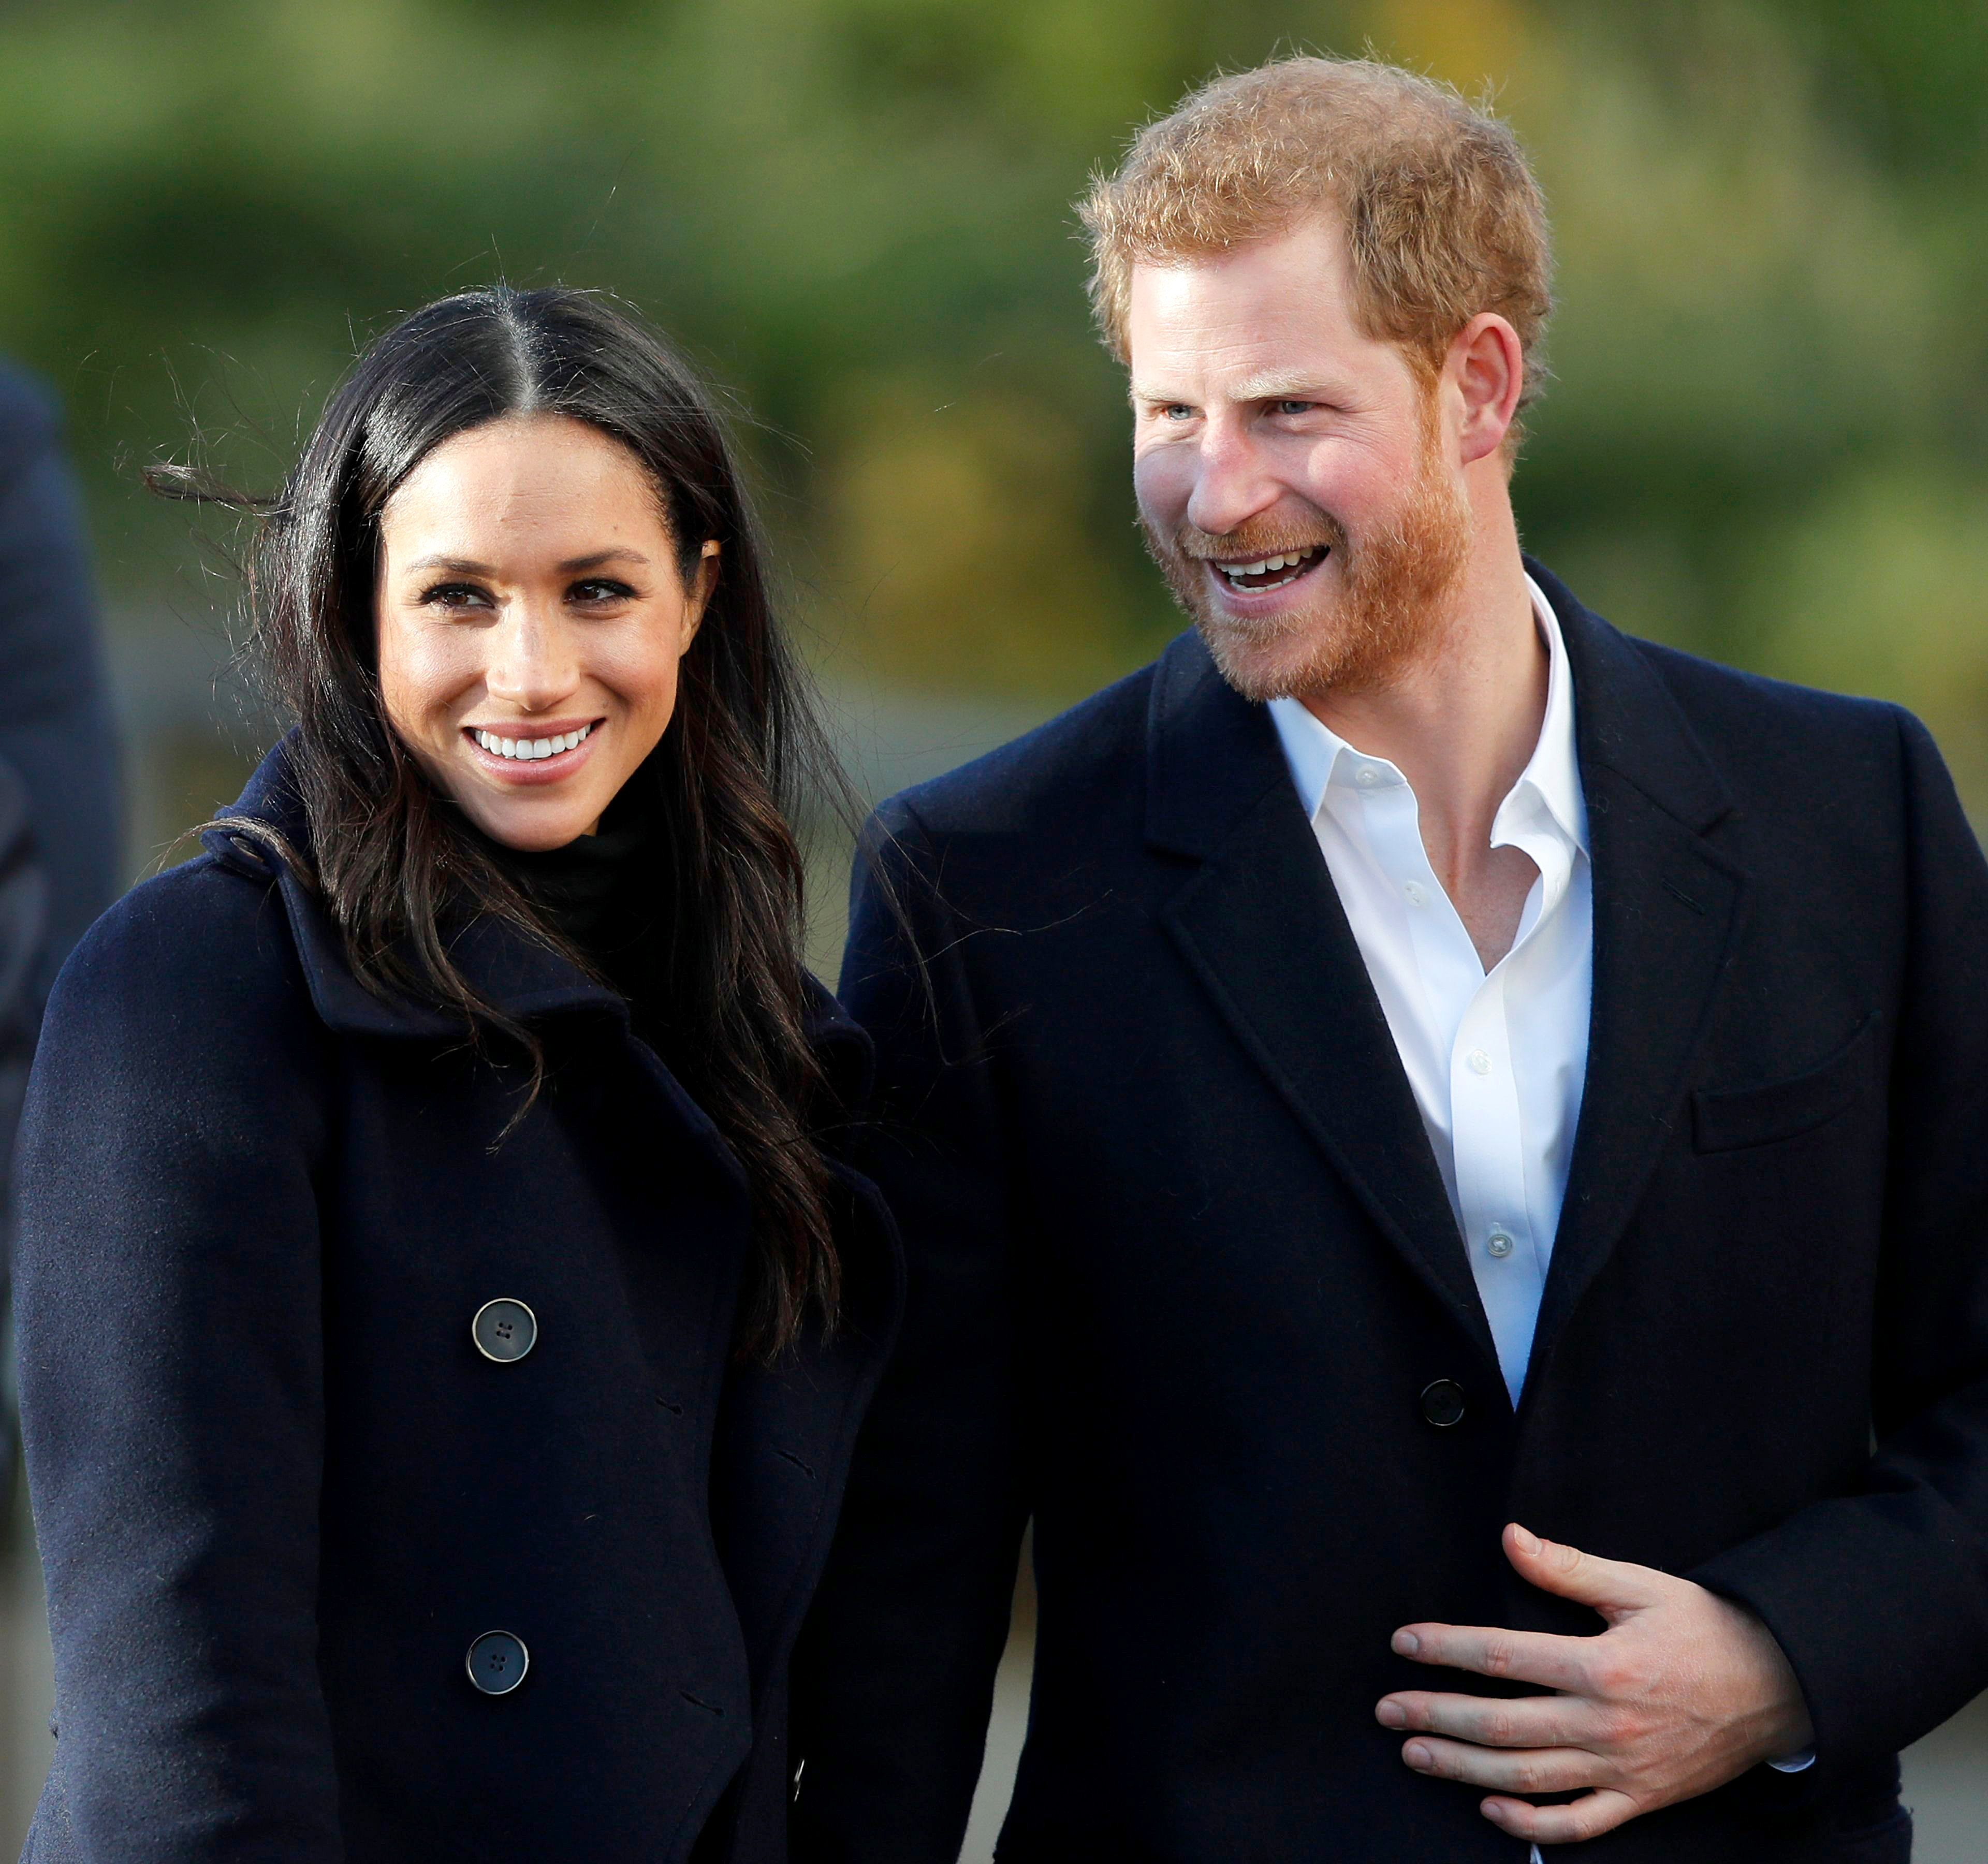 Prince Harry Meghan Markle Joke About Him Aging During Video Chat Racial Bias